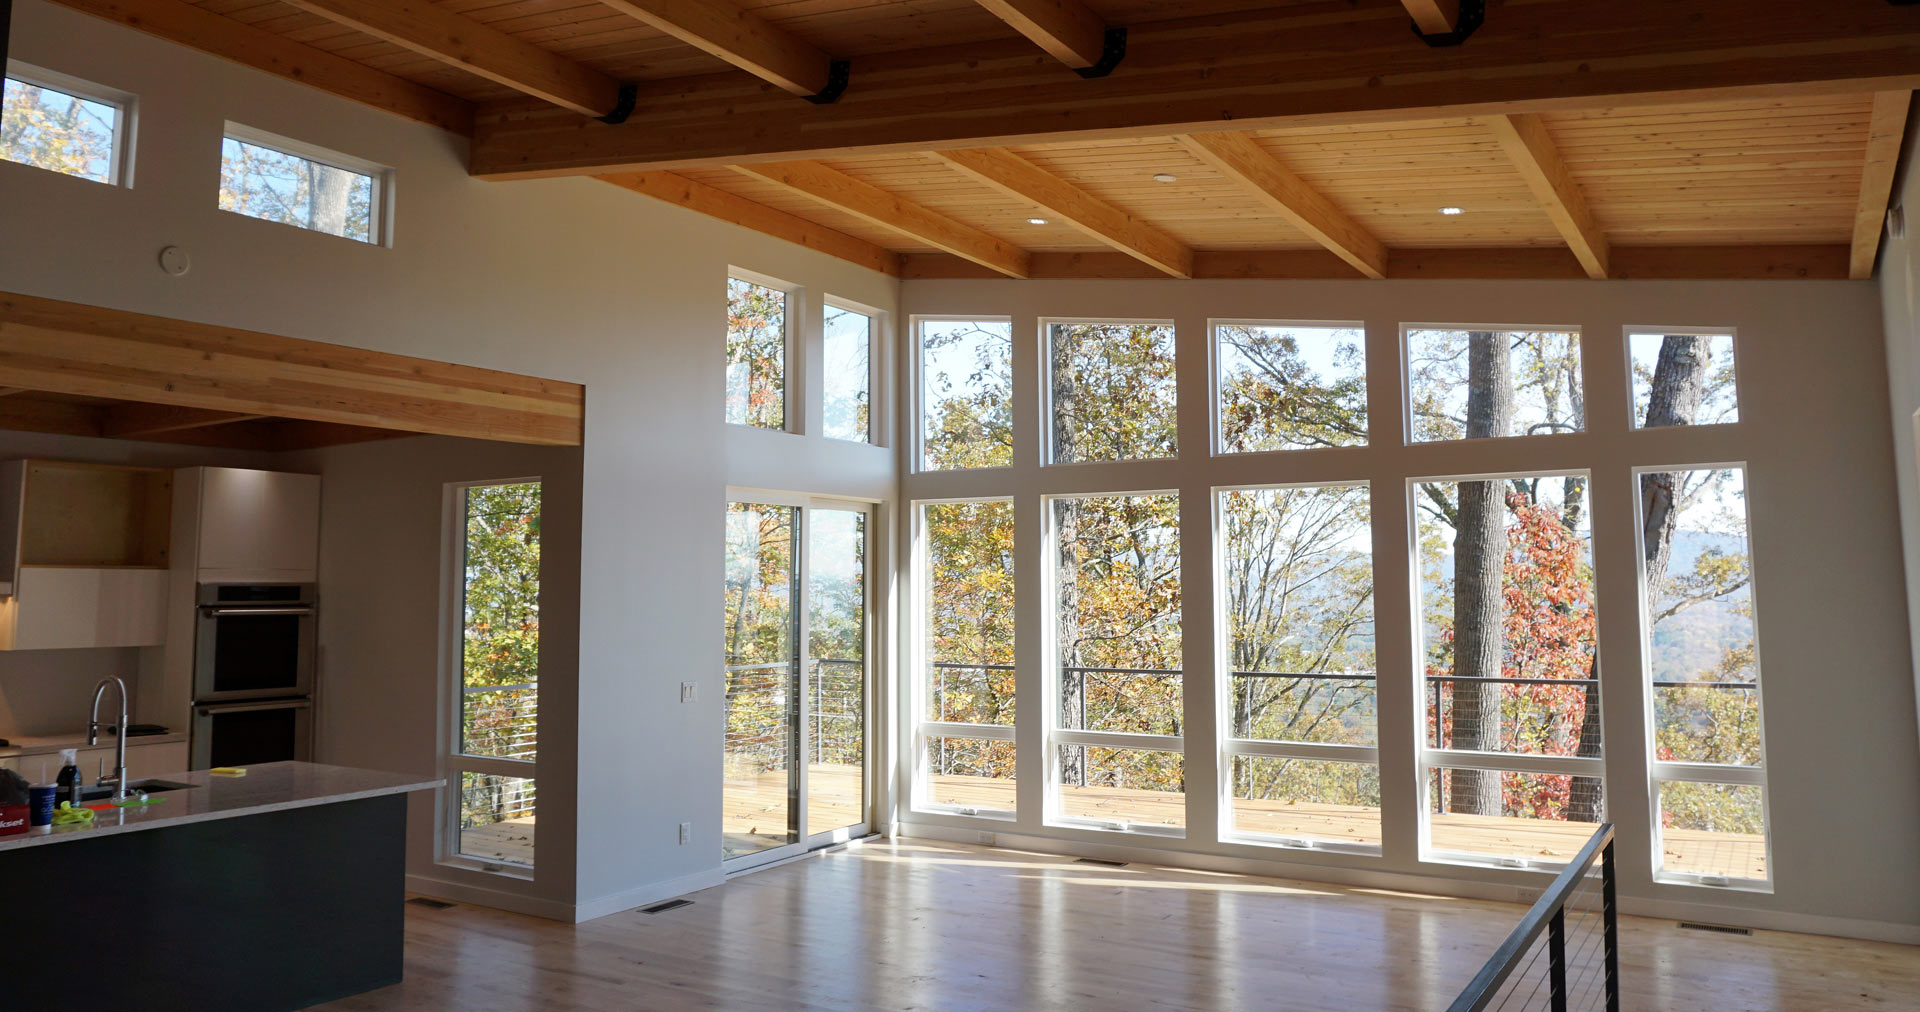 Energy Efficient Windows from an Enduring Company